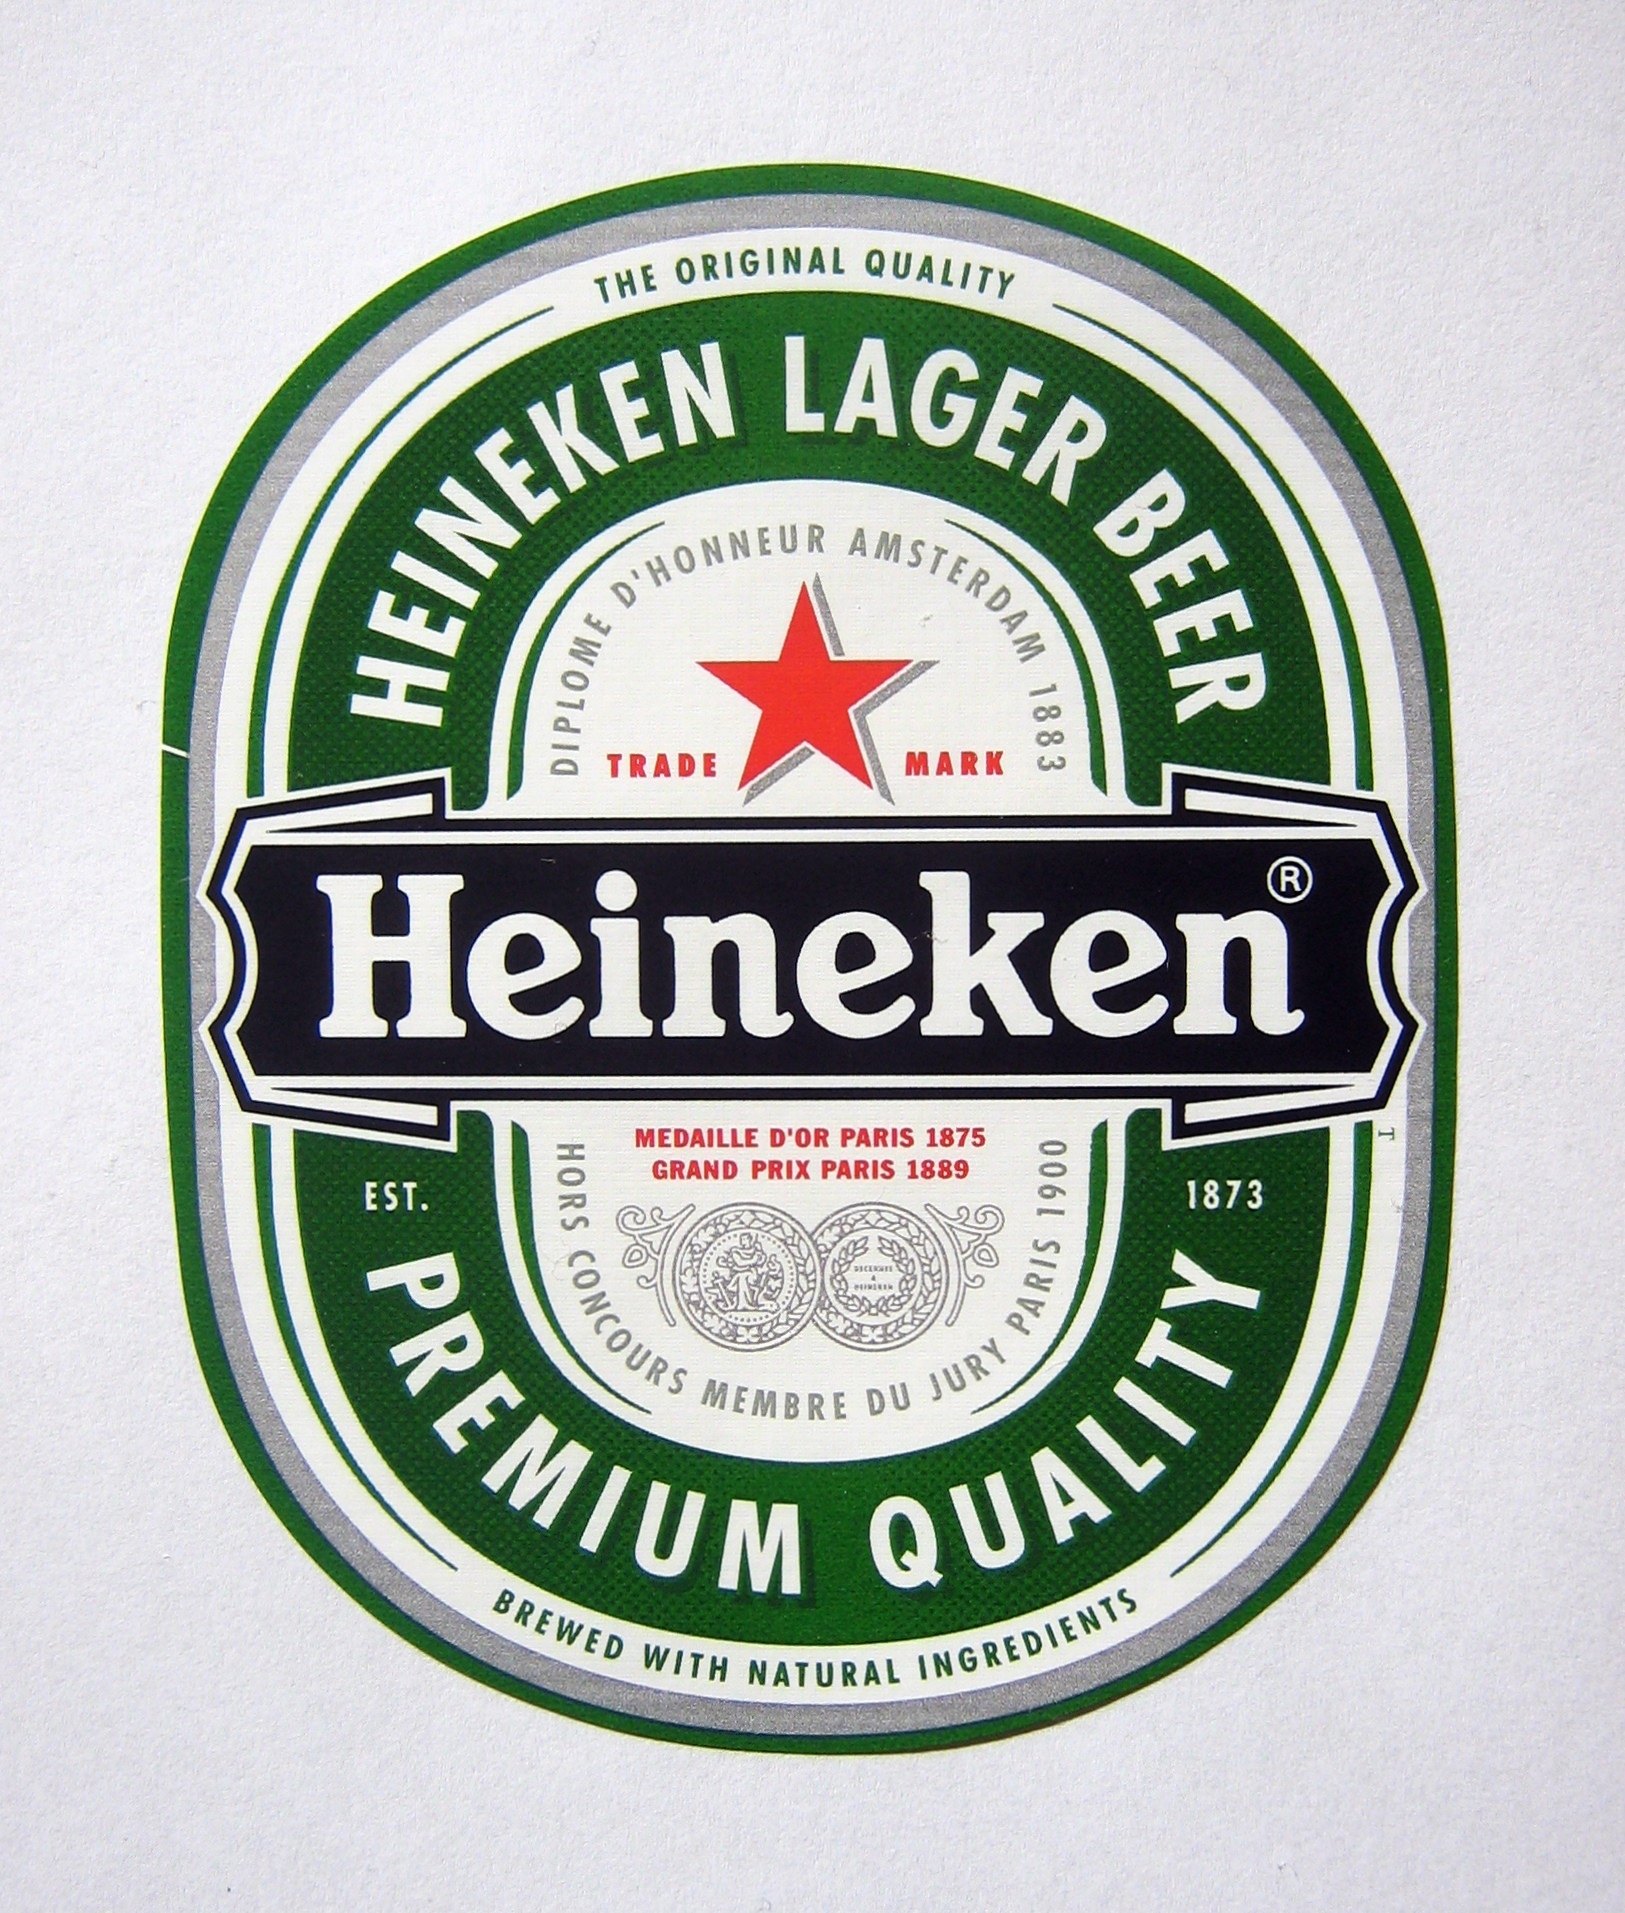 https://upload.wikimedia.org/wikipedia/commons/c/c2/Heineken-etykieta.JPG